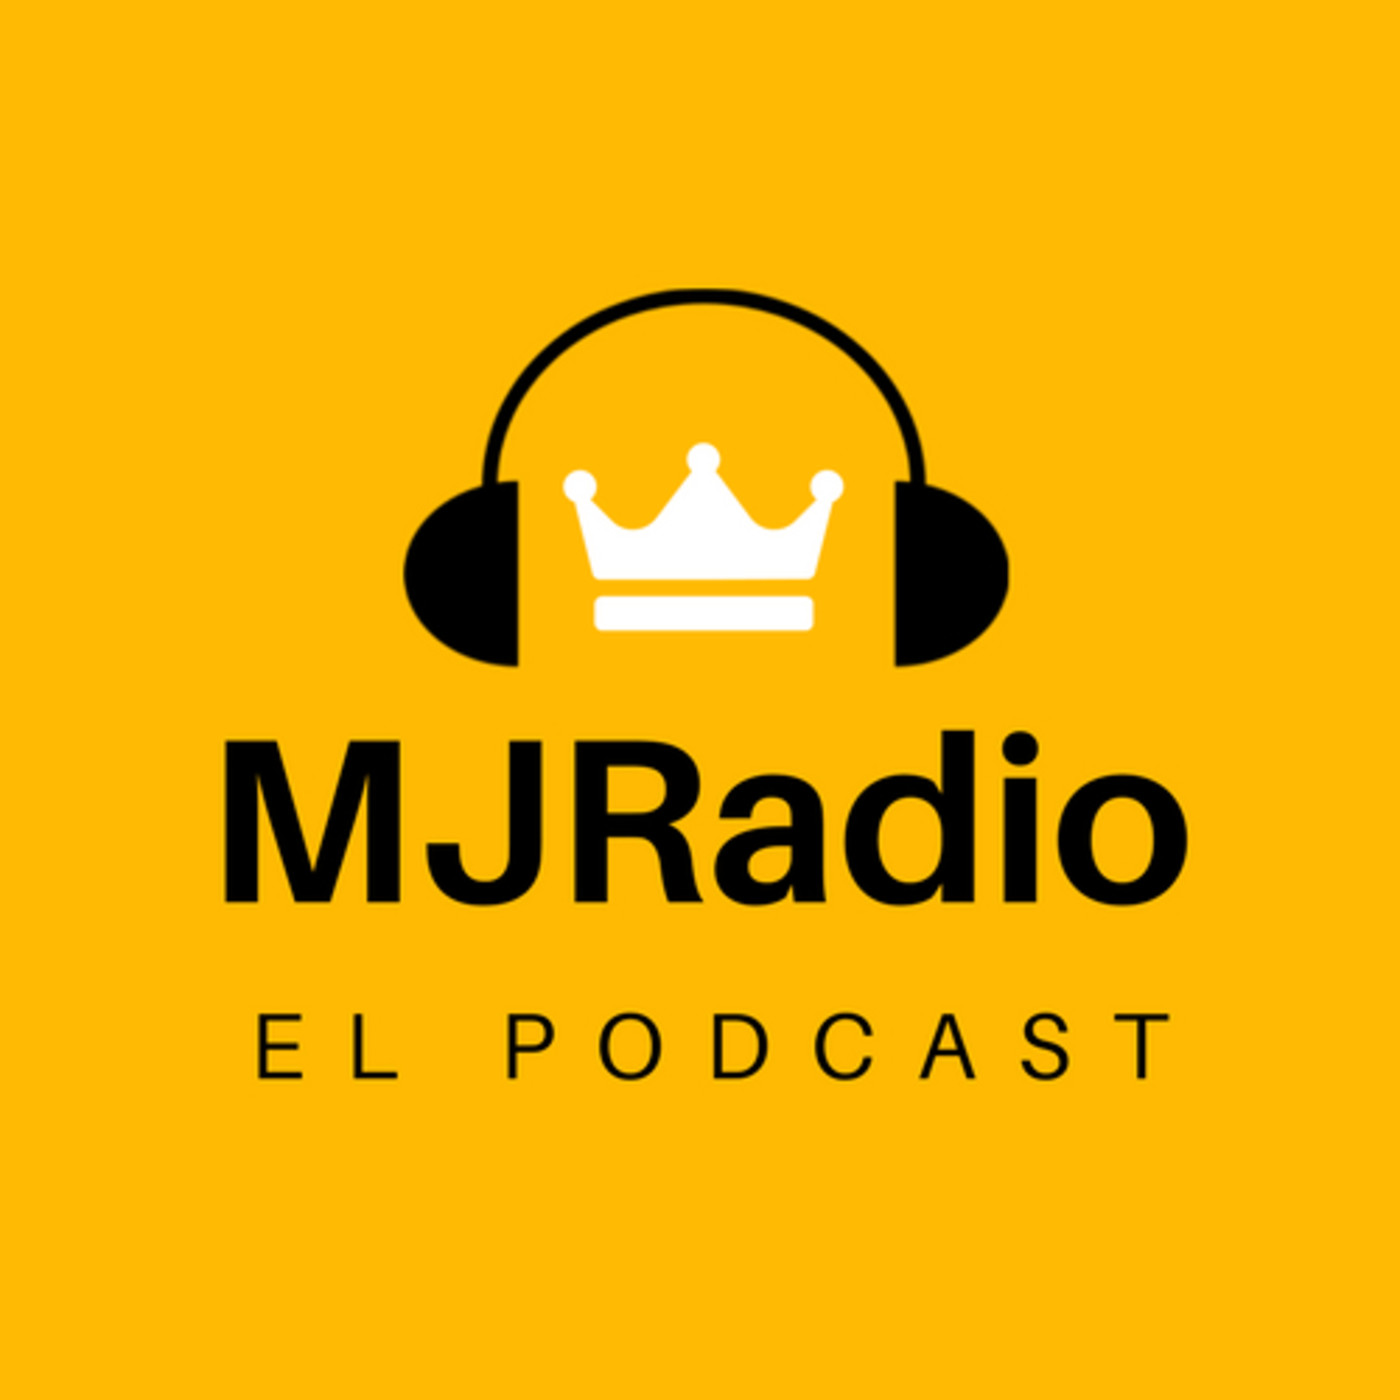 MJRadio - El Podcast